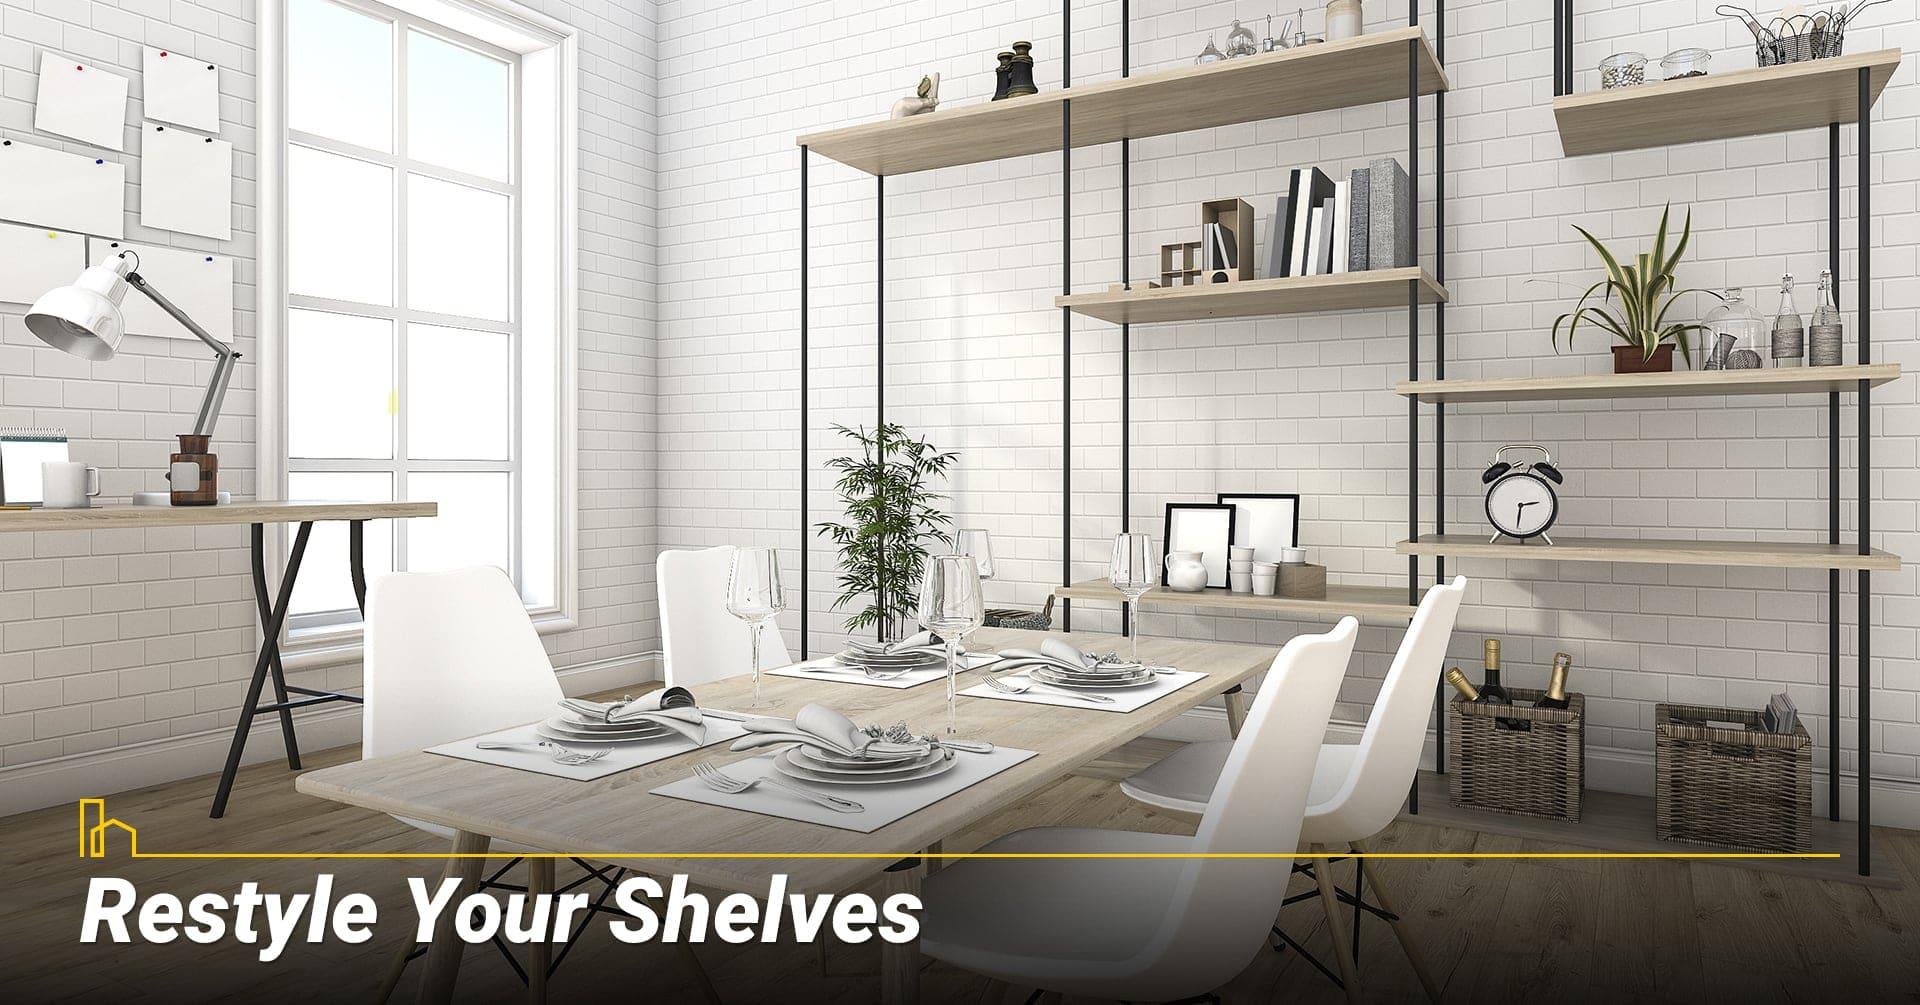 Restyle Your Shelves, add some style to your shelves